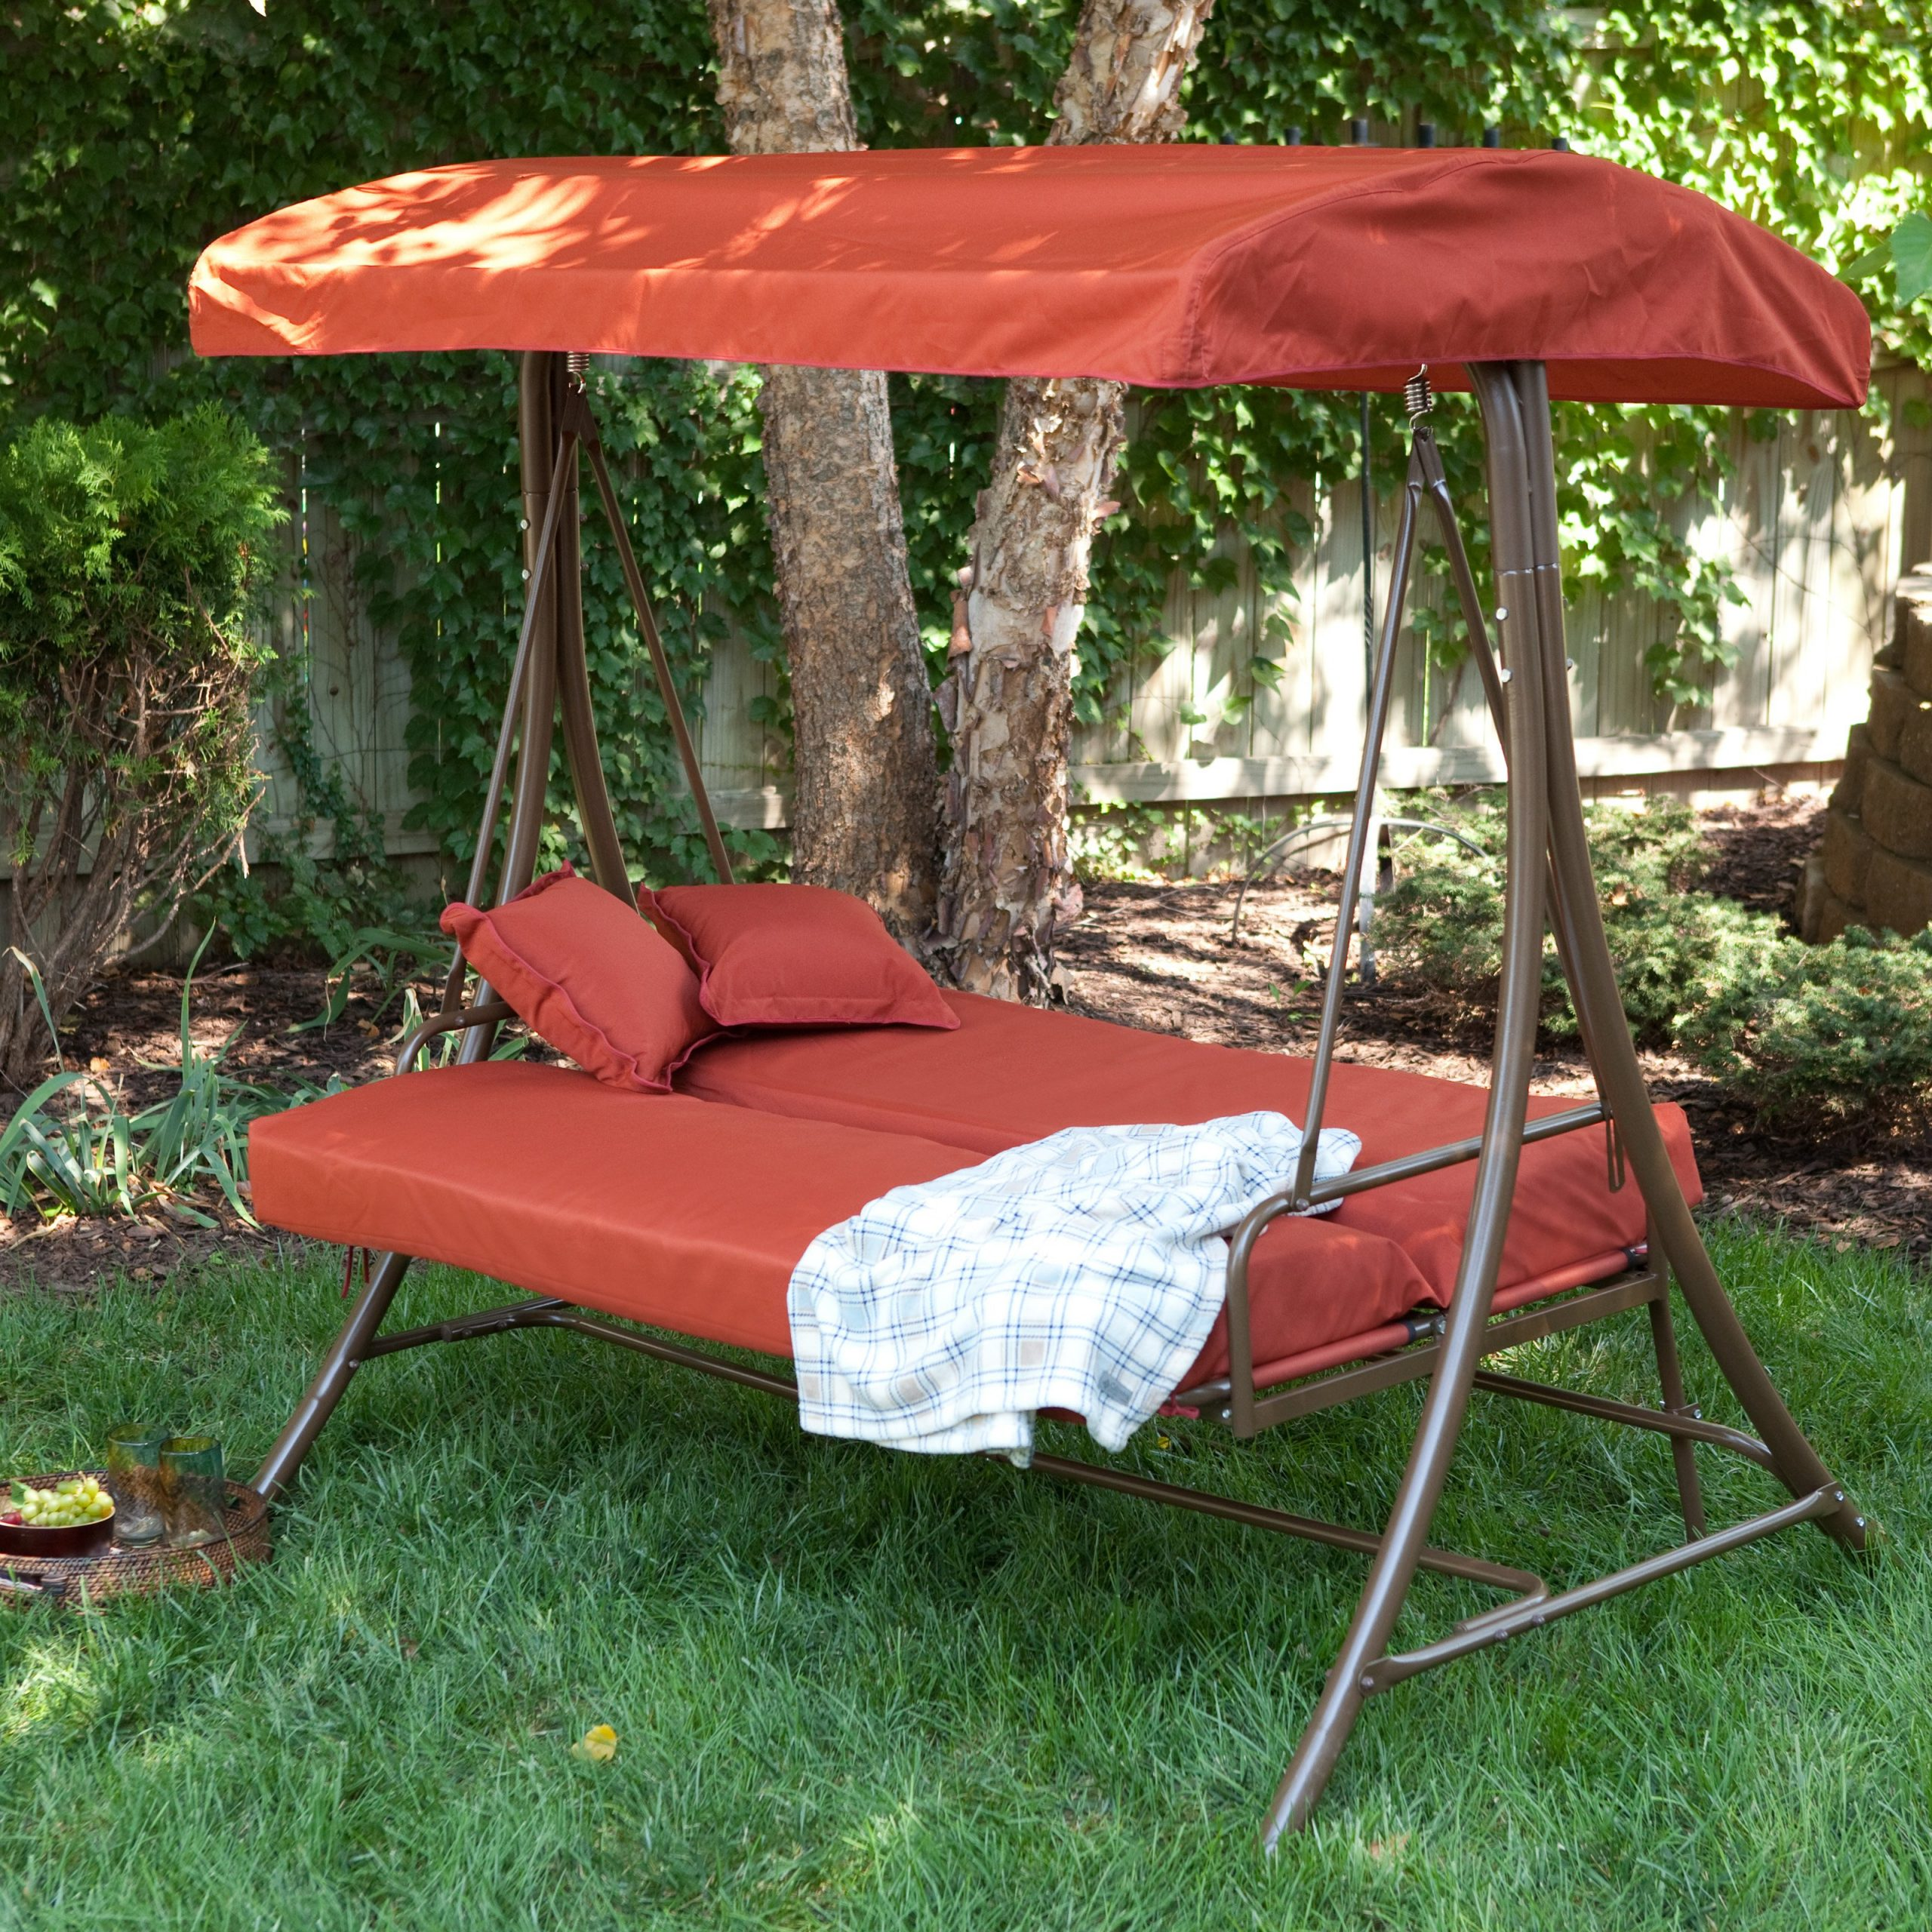 Hammock Patio Backyard Deck Ideas Dining Set Umbrella With For Porch Swings With Canopy (View 20 of 25)